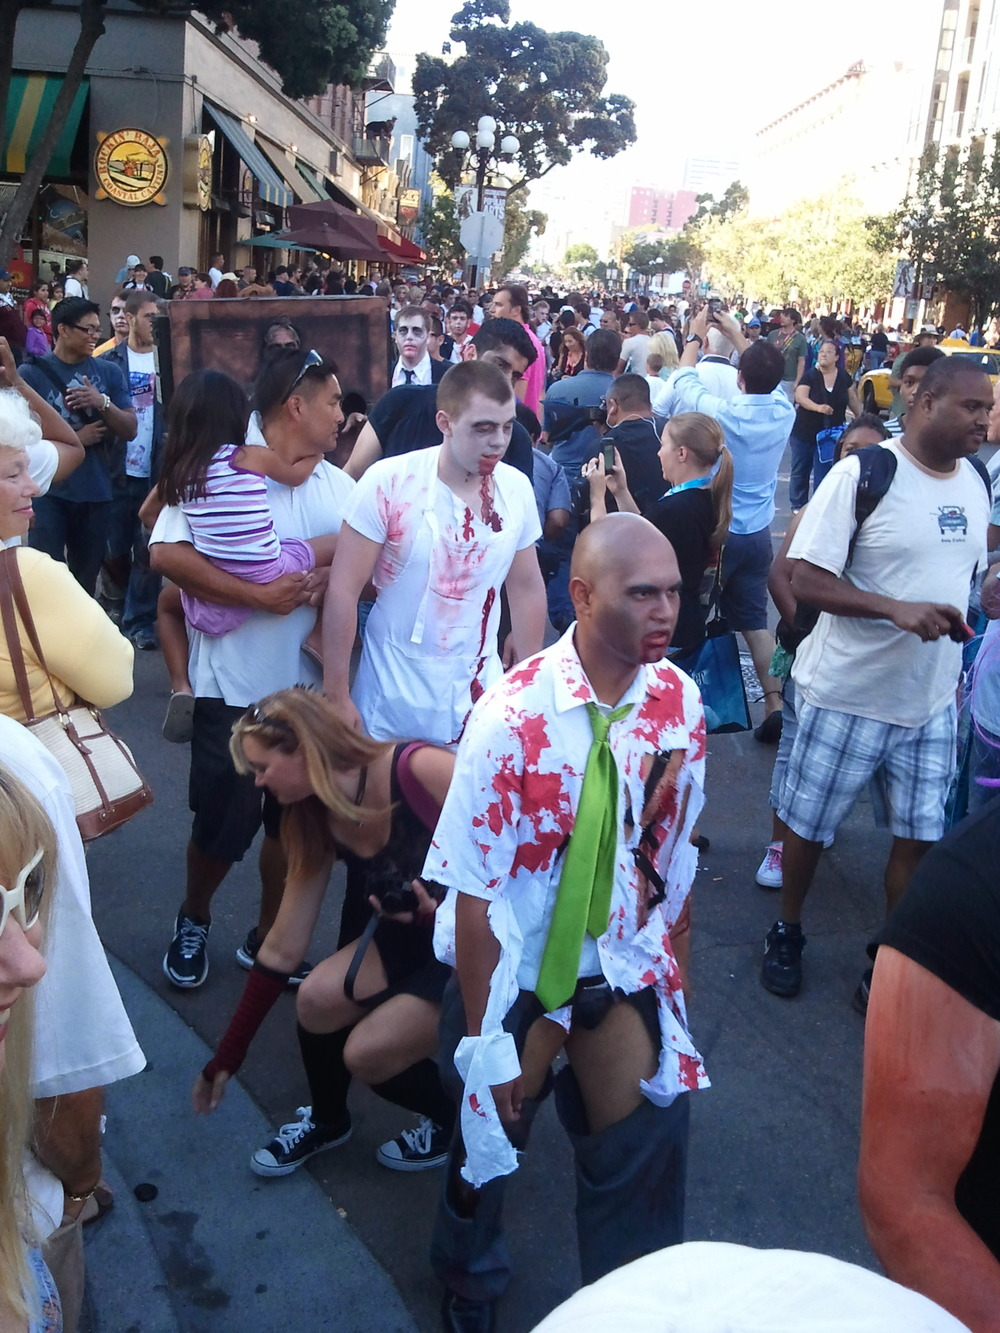 Breaking News: Zombies Invade San Diego